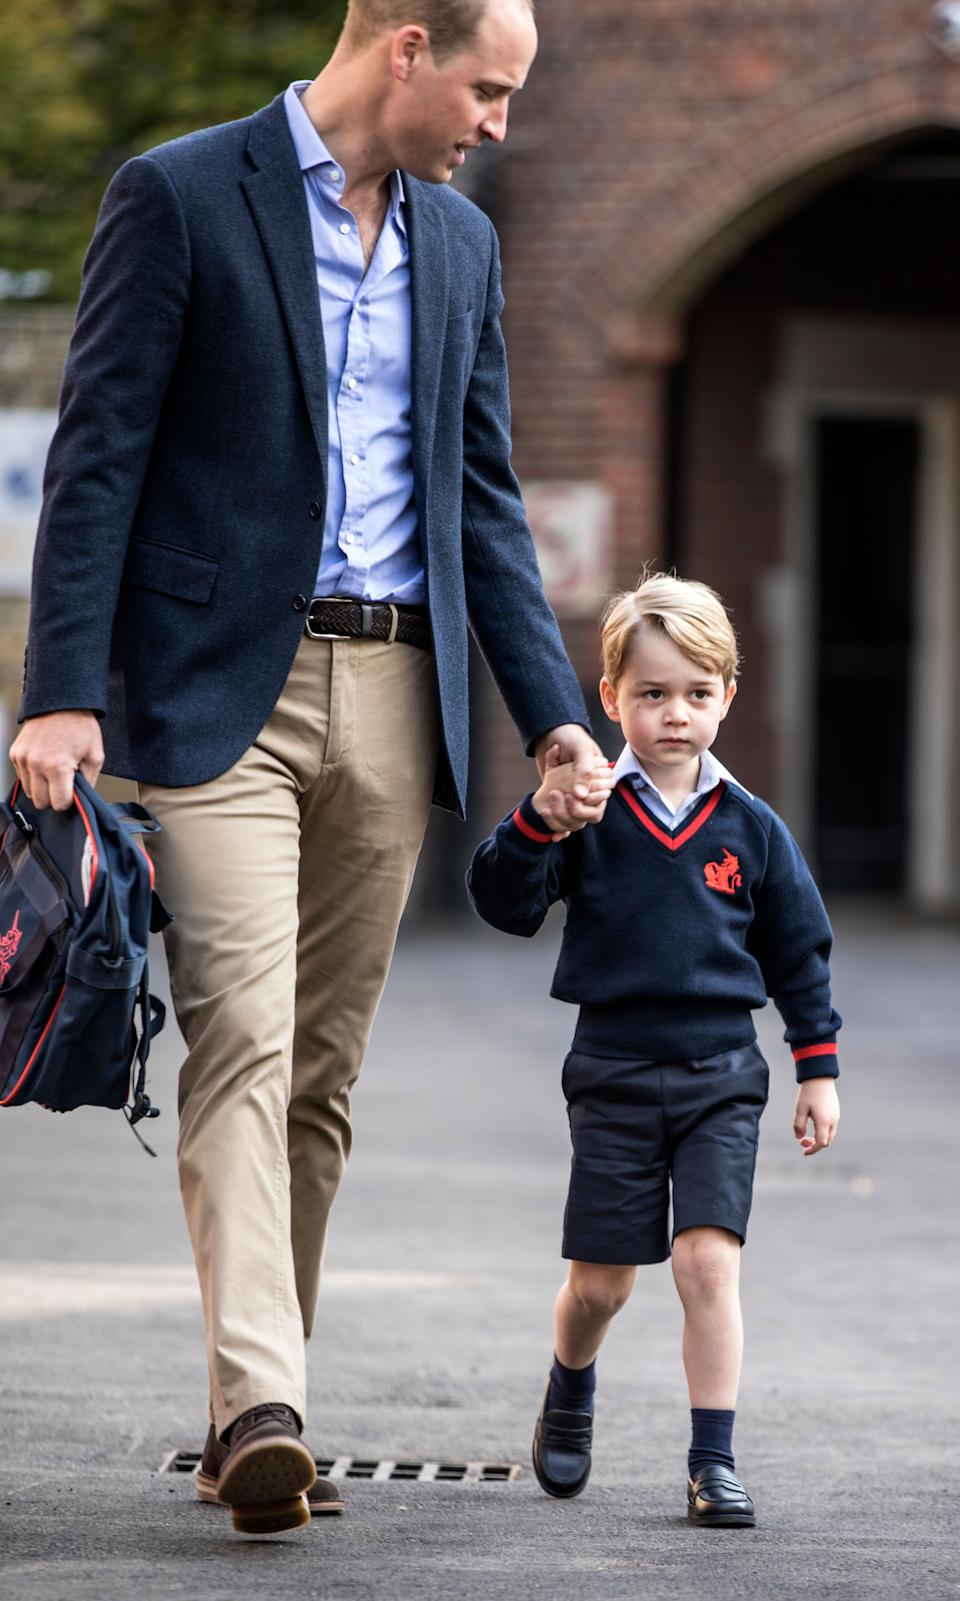 Britain's Prince William, left, accompanies Prince George as he arrives for his first day of school at Thomas's school in Battersea, London, Thursday, Sept. 7, 2017.  Prince William's pregnant wife Kate was too ill with morning sickness Thursday to take young Prince George to his first day of school.  (Richard Pohle/Pool Photo via AP)